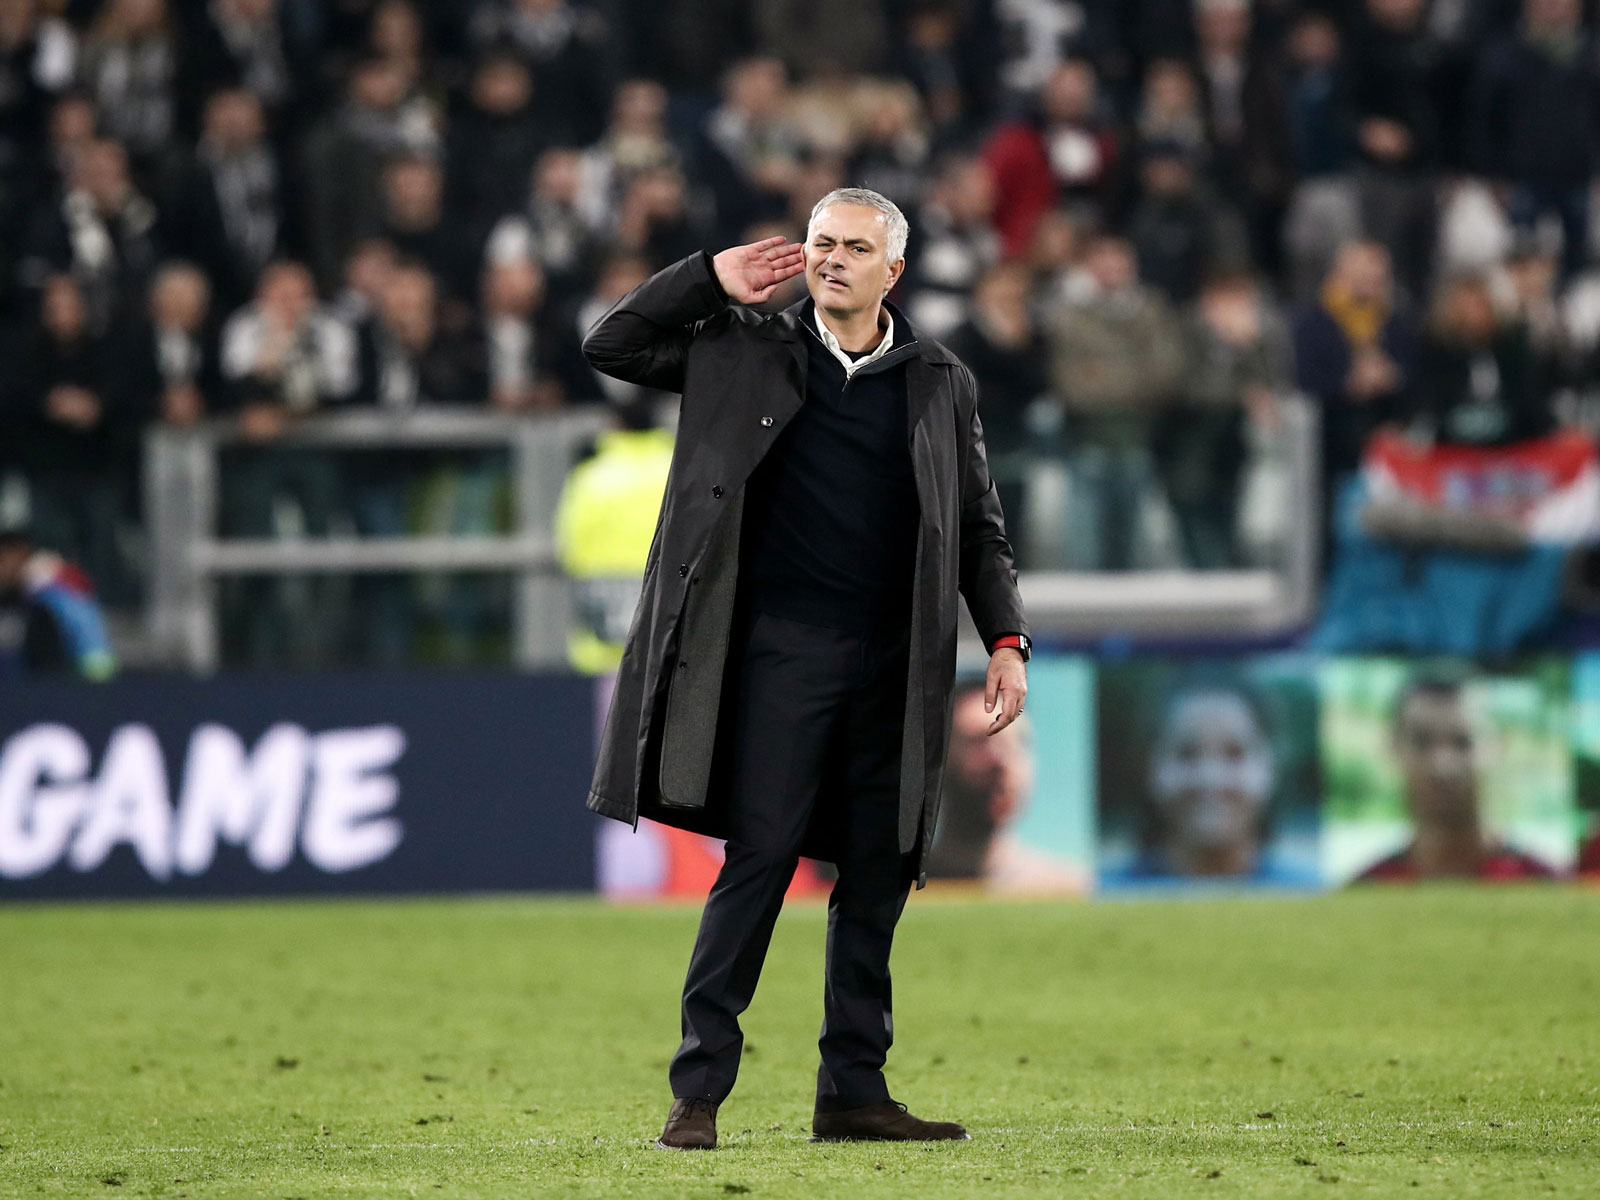 Jose Mourinho puts his hand to his ear to listen to the Juventus supporters